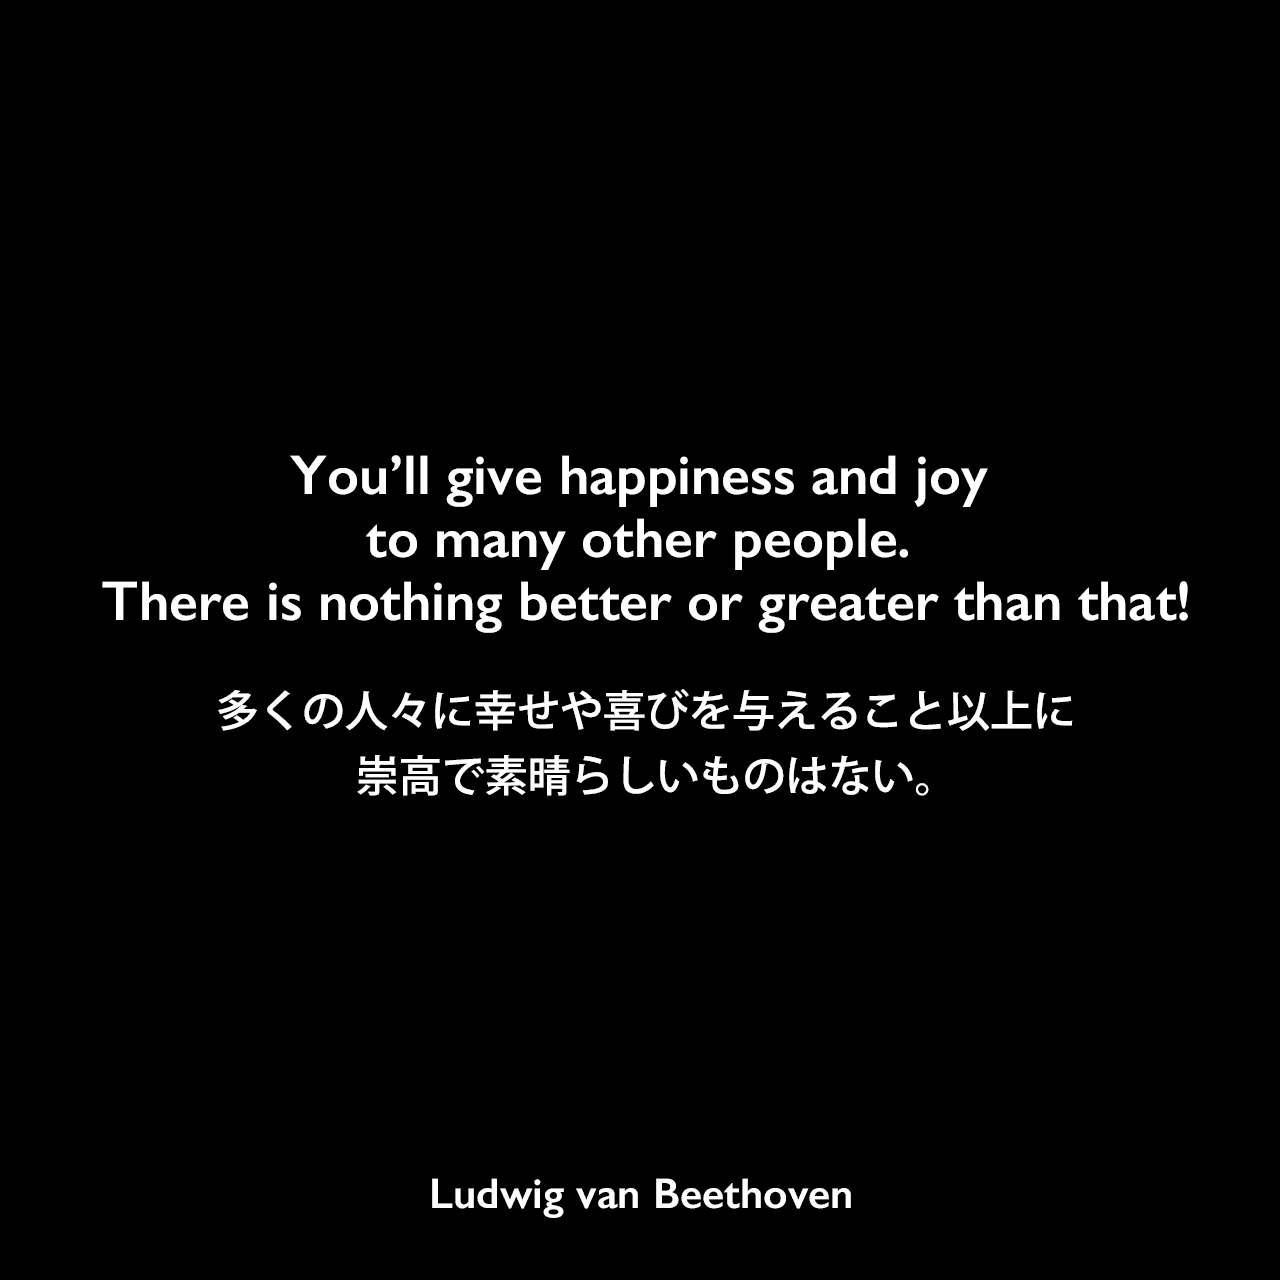 You'll give happiness and joy to many other people. There is nothing better or greater than that!多くの人々に幸せや喜びを与えること以上に、崇高で素晴らしいものはない。